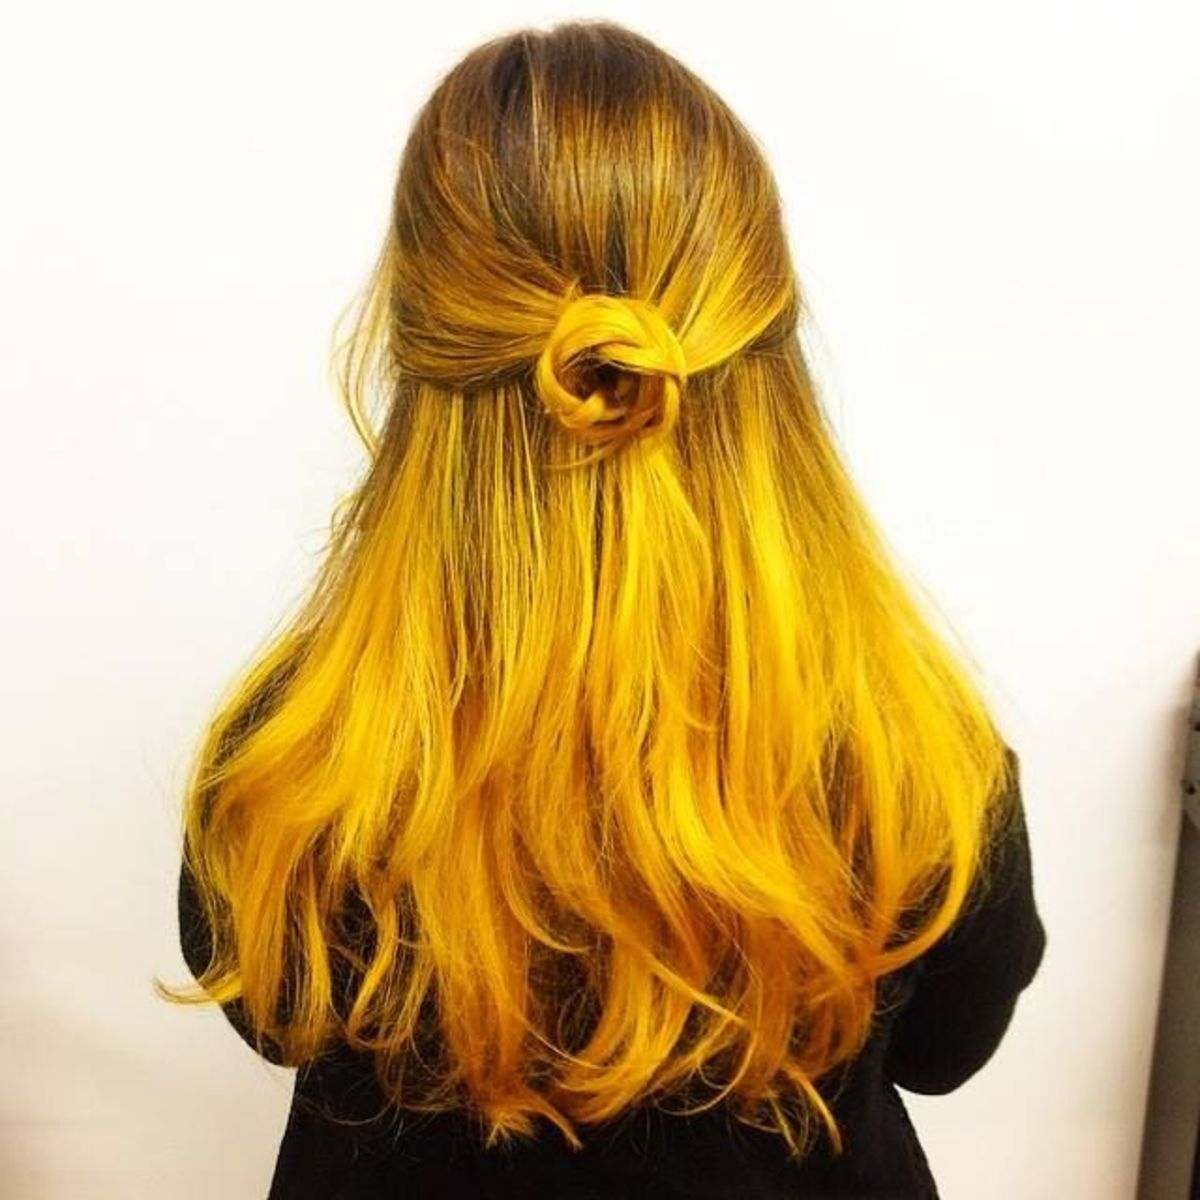 DIY Hair 15 Orange And Yellow Hair Color Ideas  Hubpages